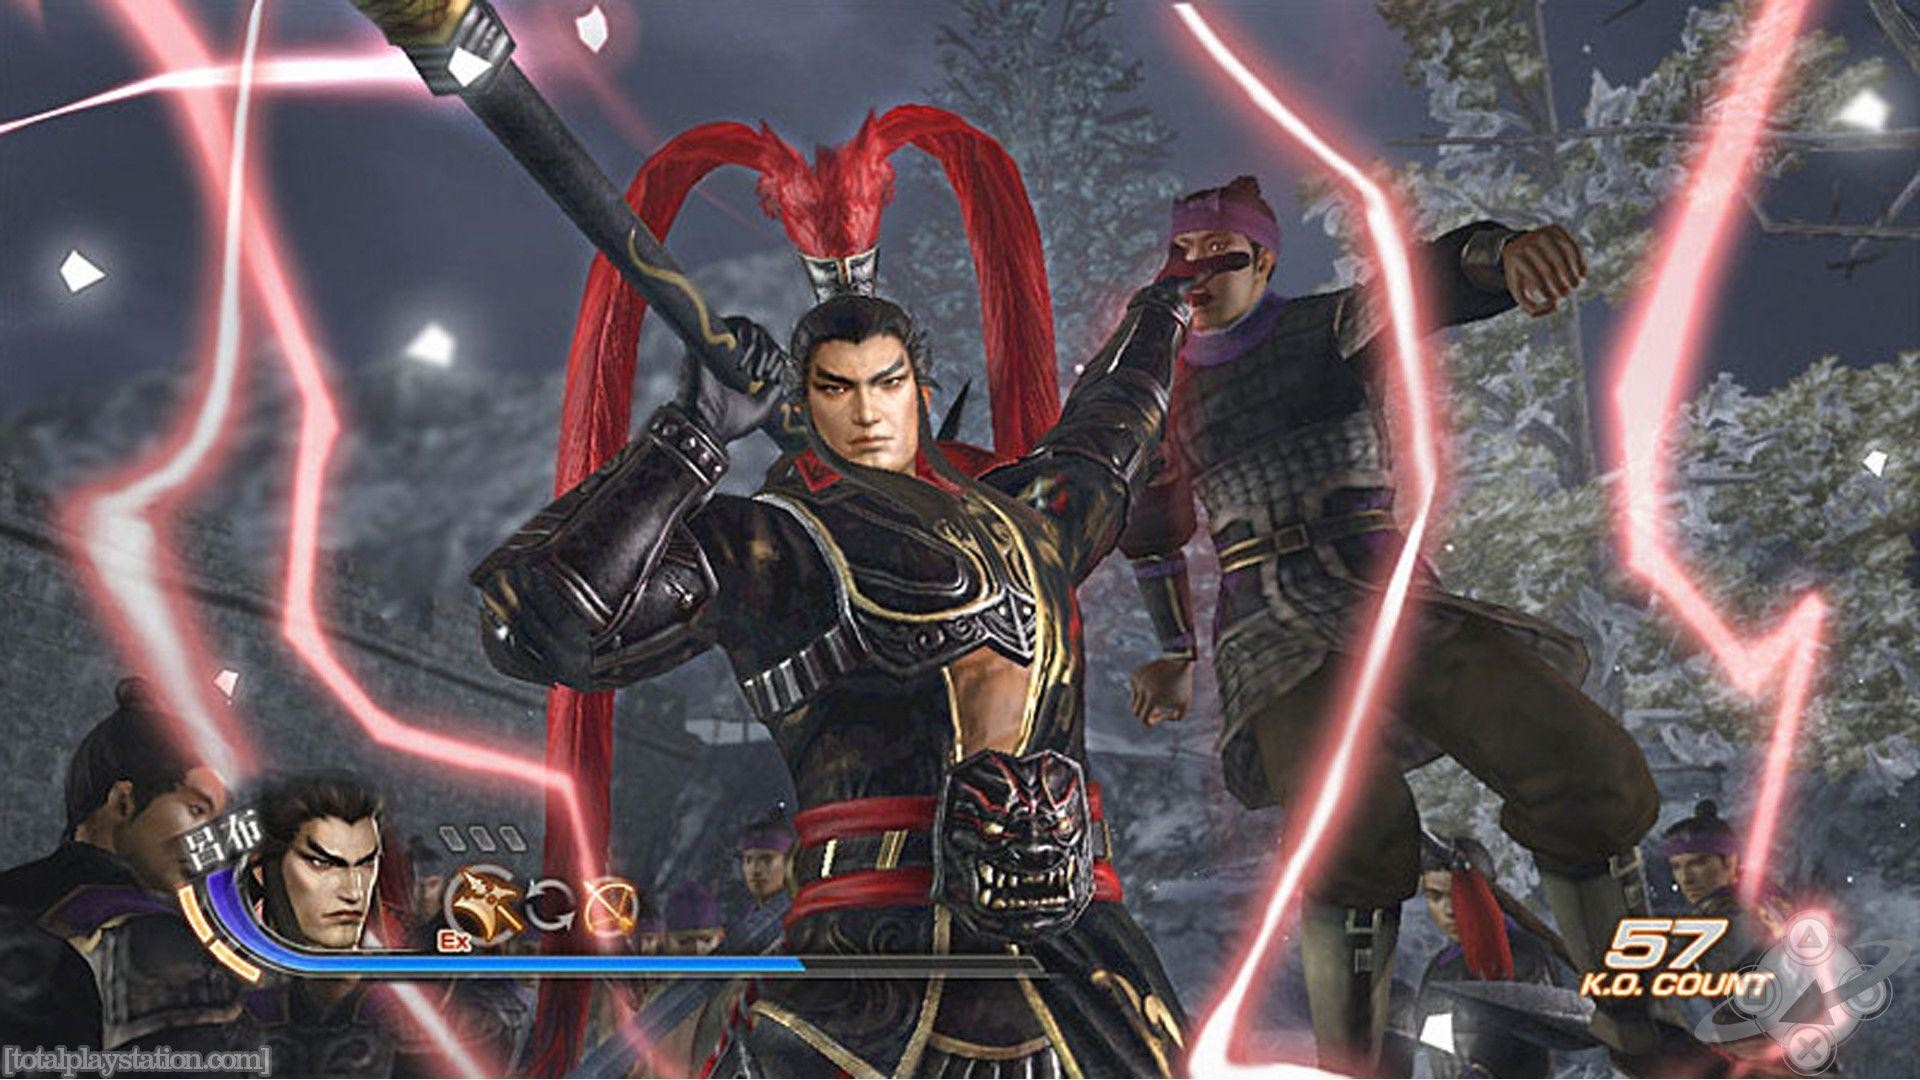 1920x1080 Dynasty Warriors 7 Wallpapers | playstationwallpapers.com